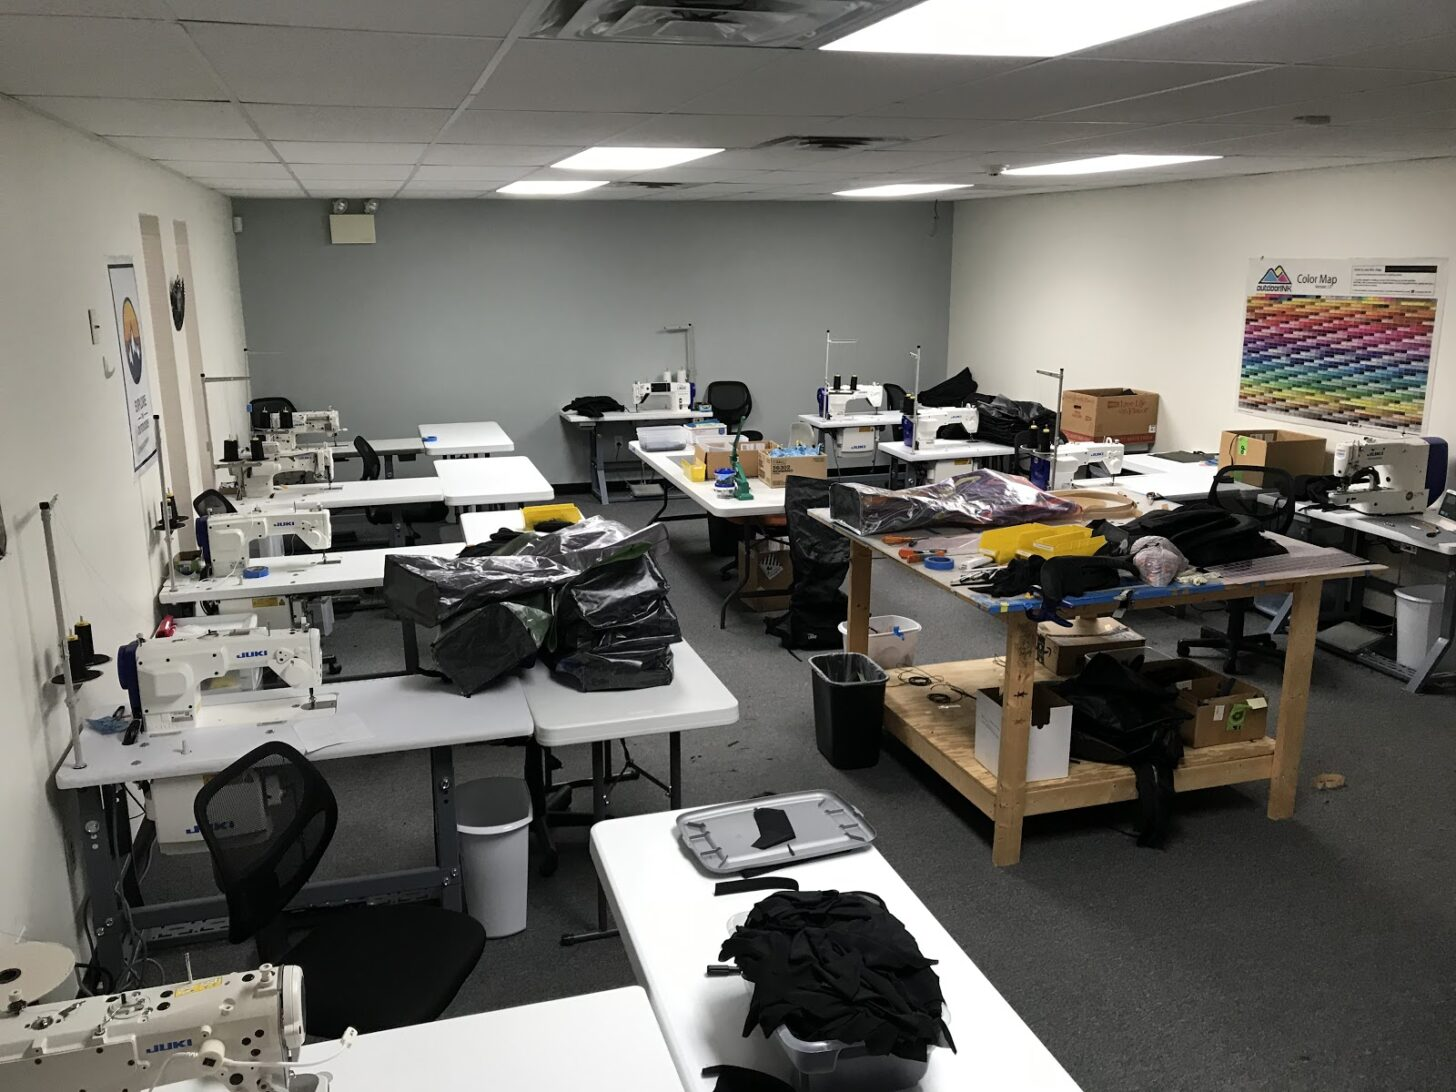 a sewing room with desks and sewing machines